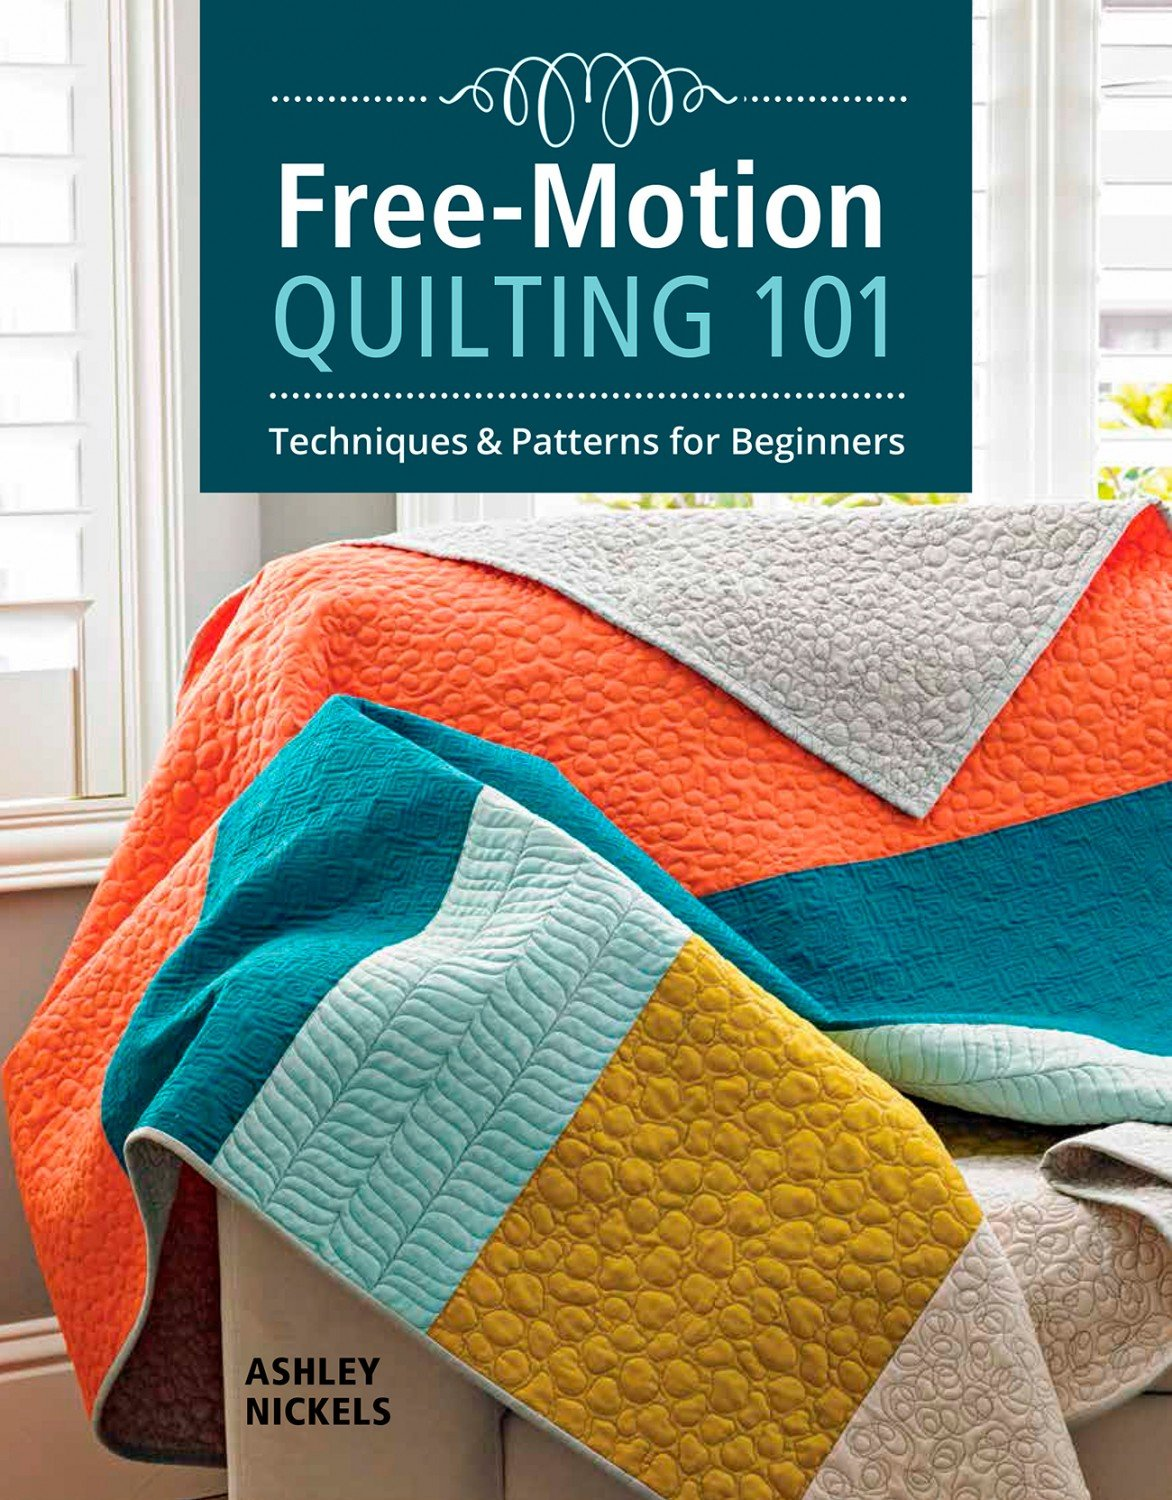 Free Morion Quilting 101